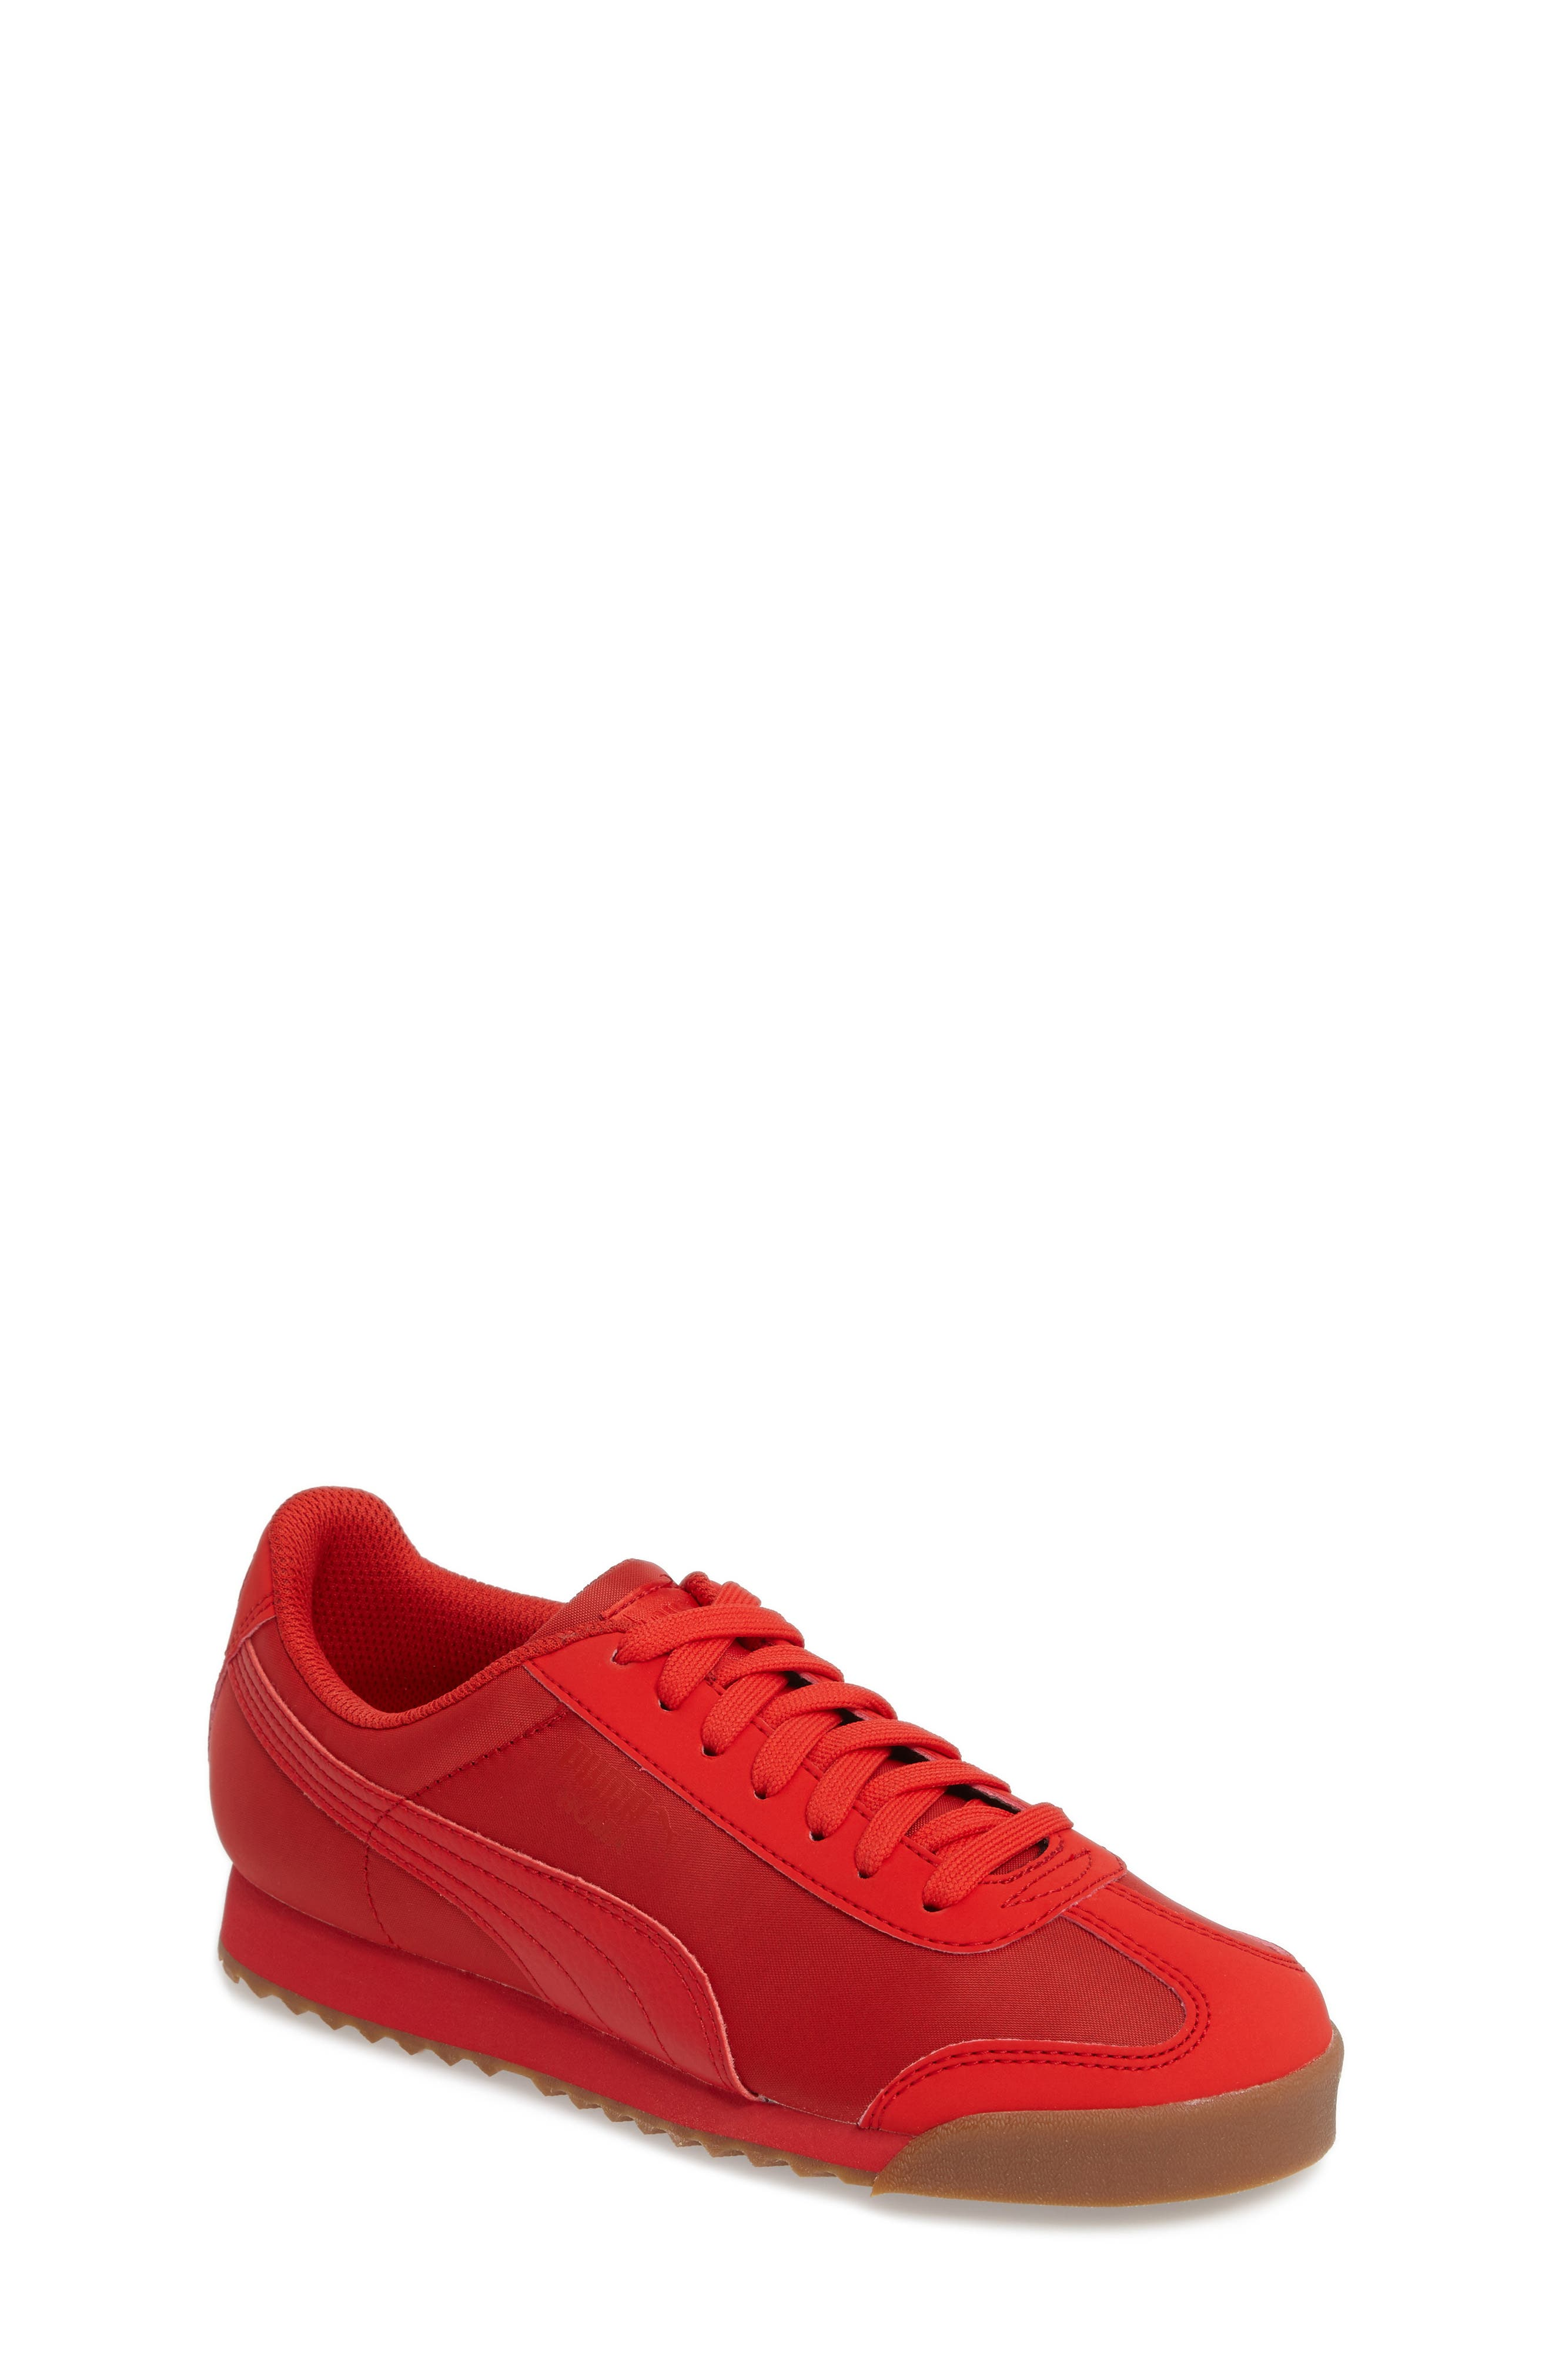 PUMA Roma Basic Summer Sneaker (Big Kid)